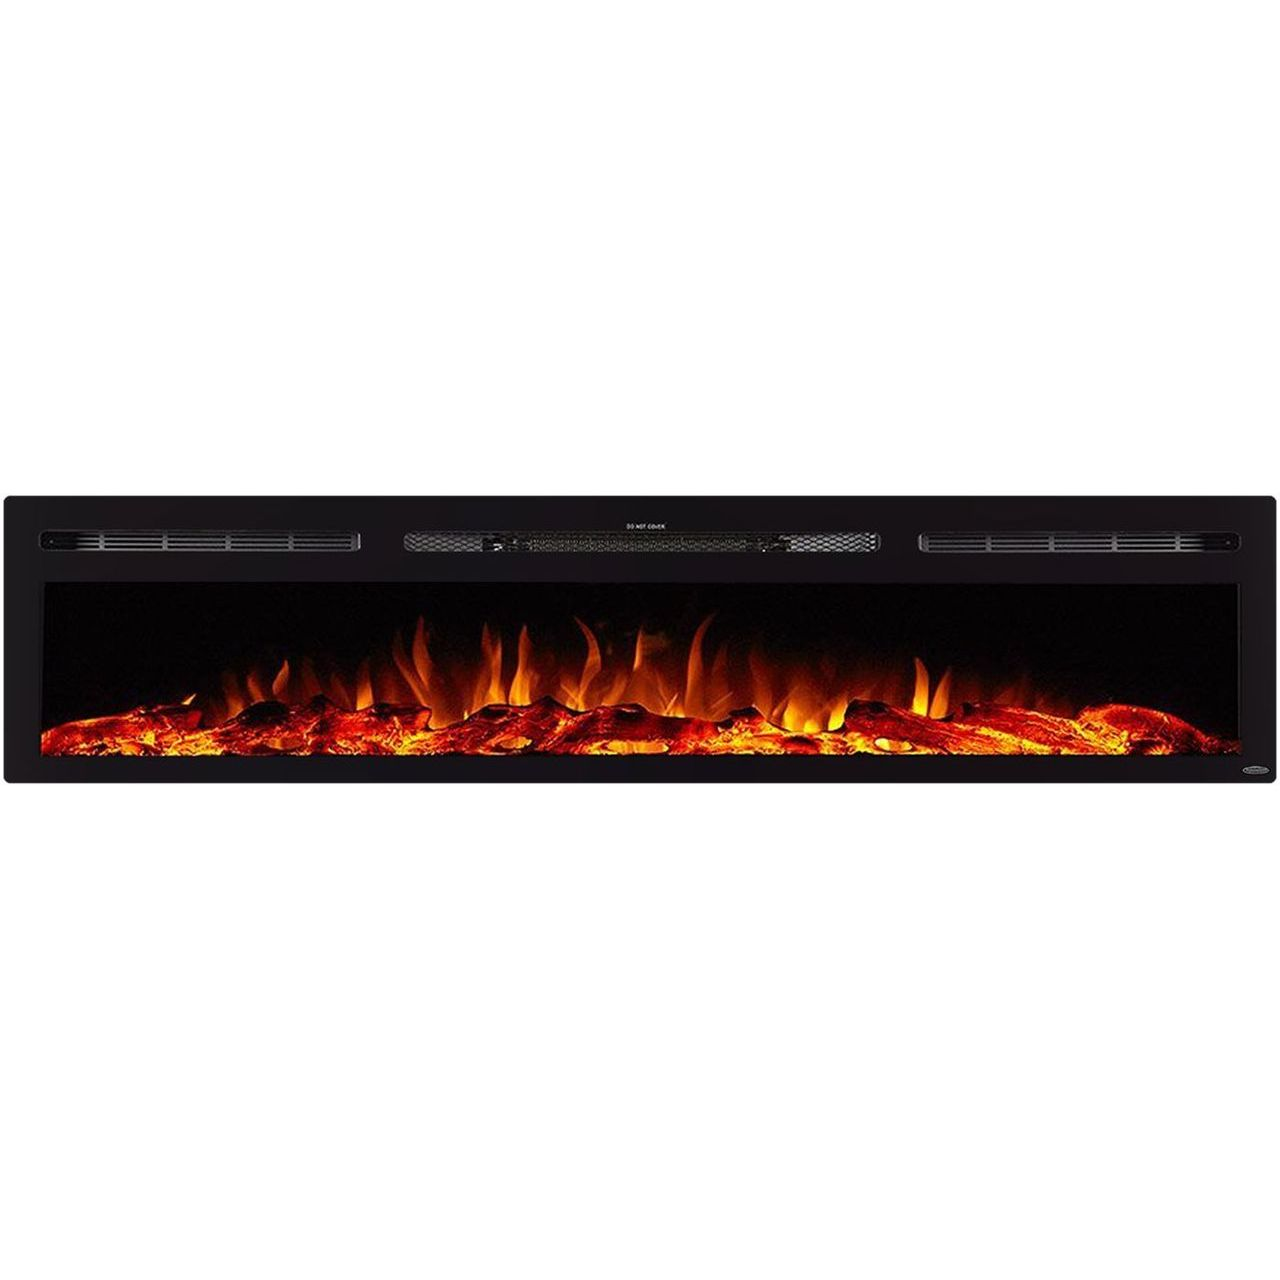 "Touchstone Sideline 80043 84"" Recessed Electric Fireplace"